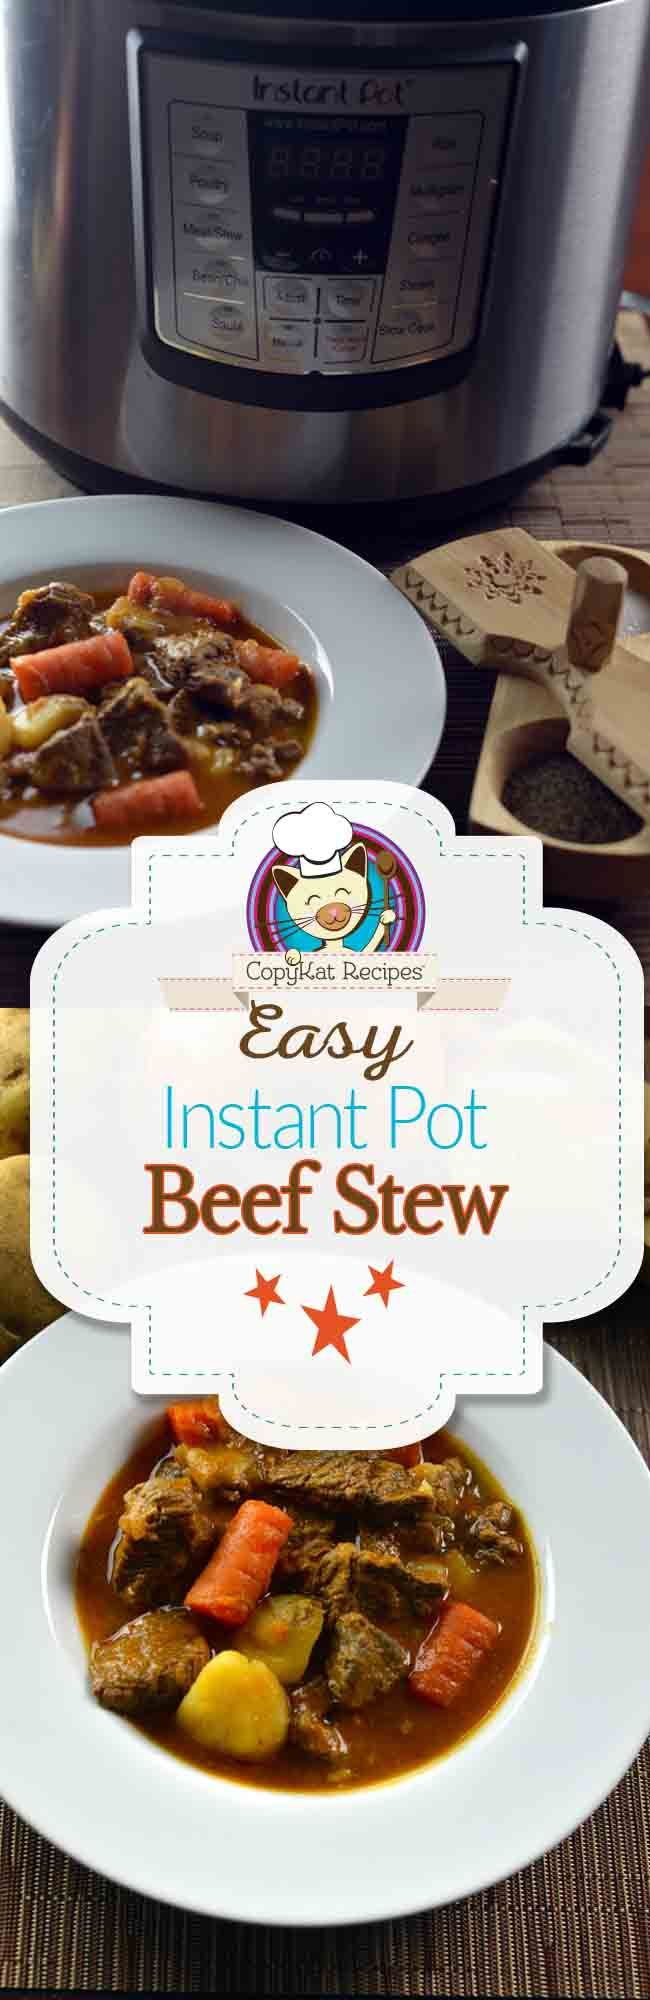 You can pressure cooker your beef stew for fast amazing flavor. Beef has never been so tender.